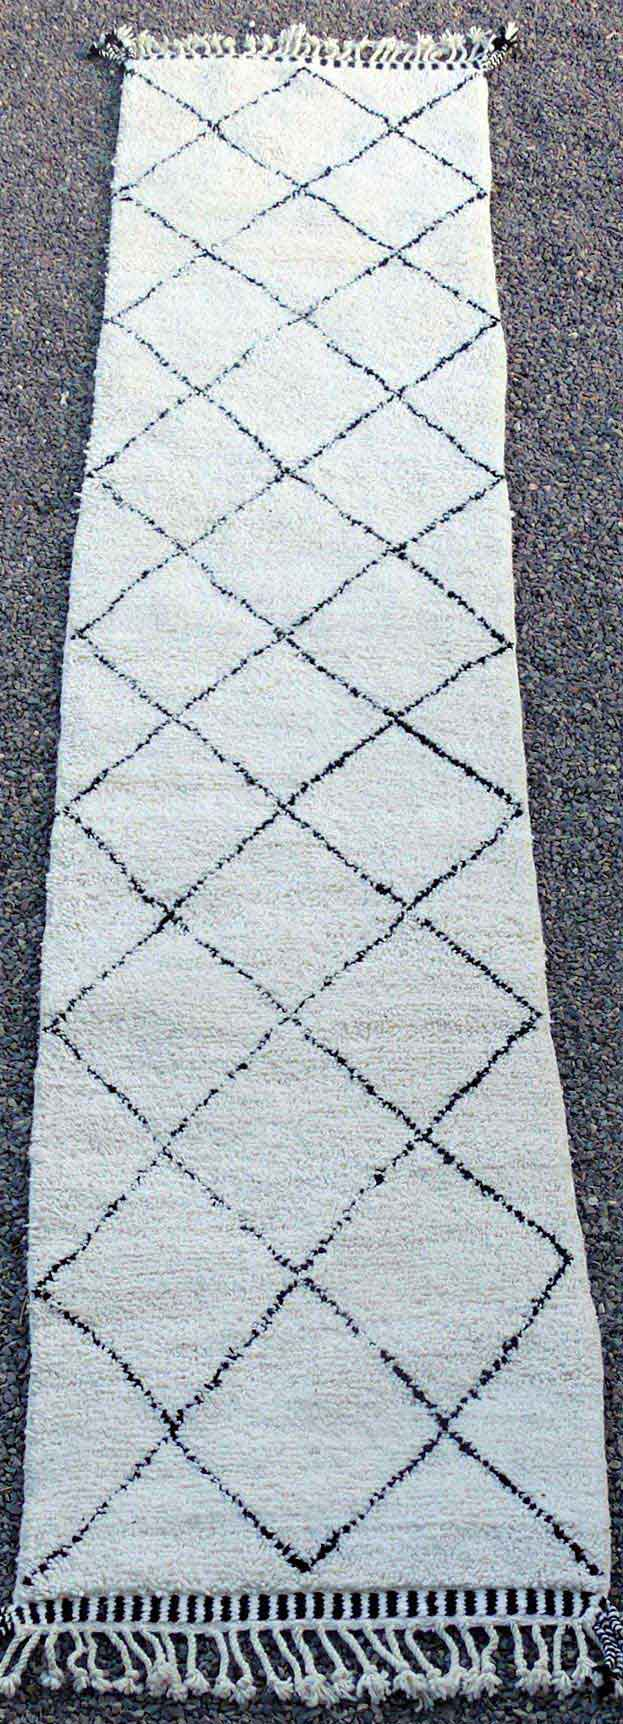 BENI OURAIN-WOOL RUGS Beni Ourain Large sizes ref : BO49179/MA